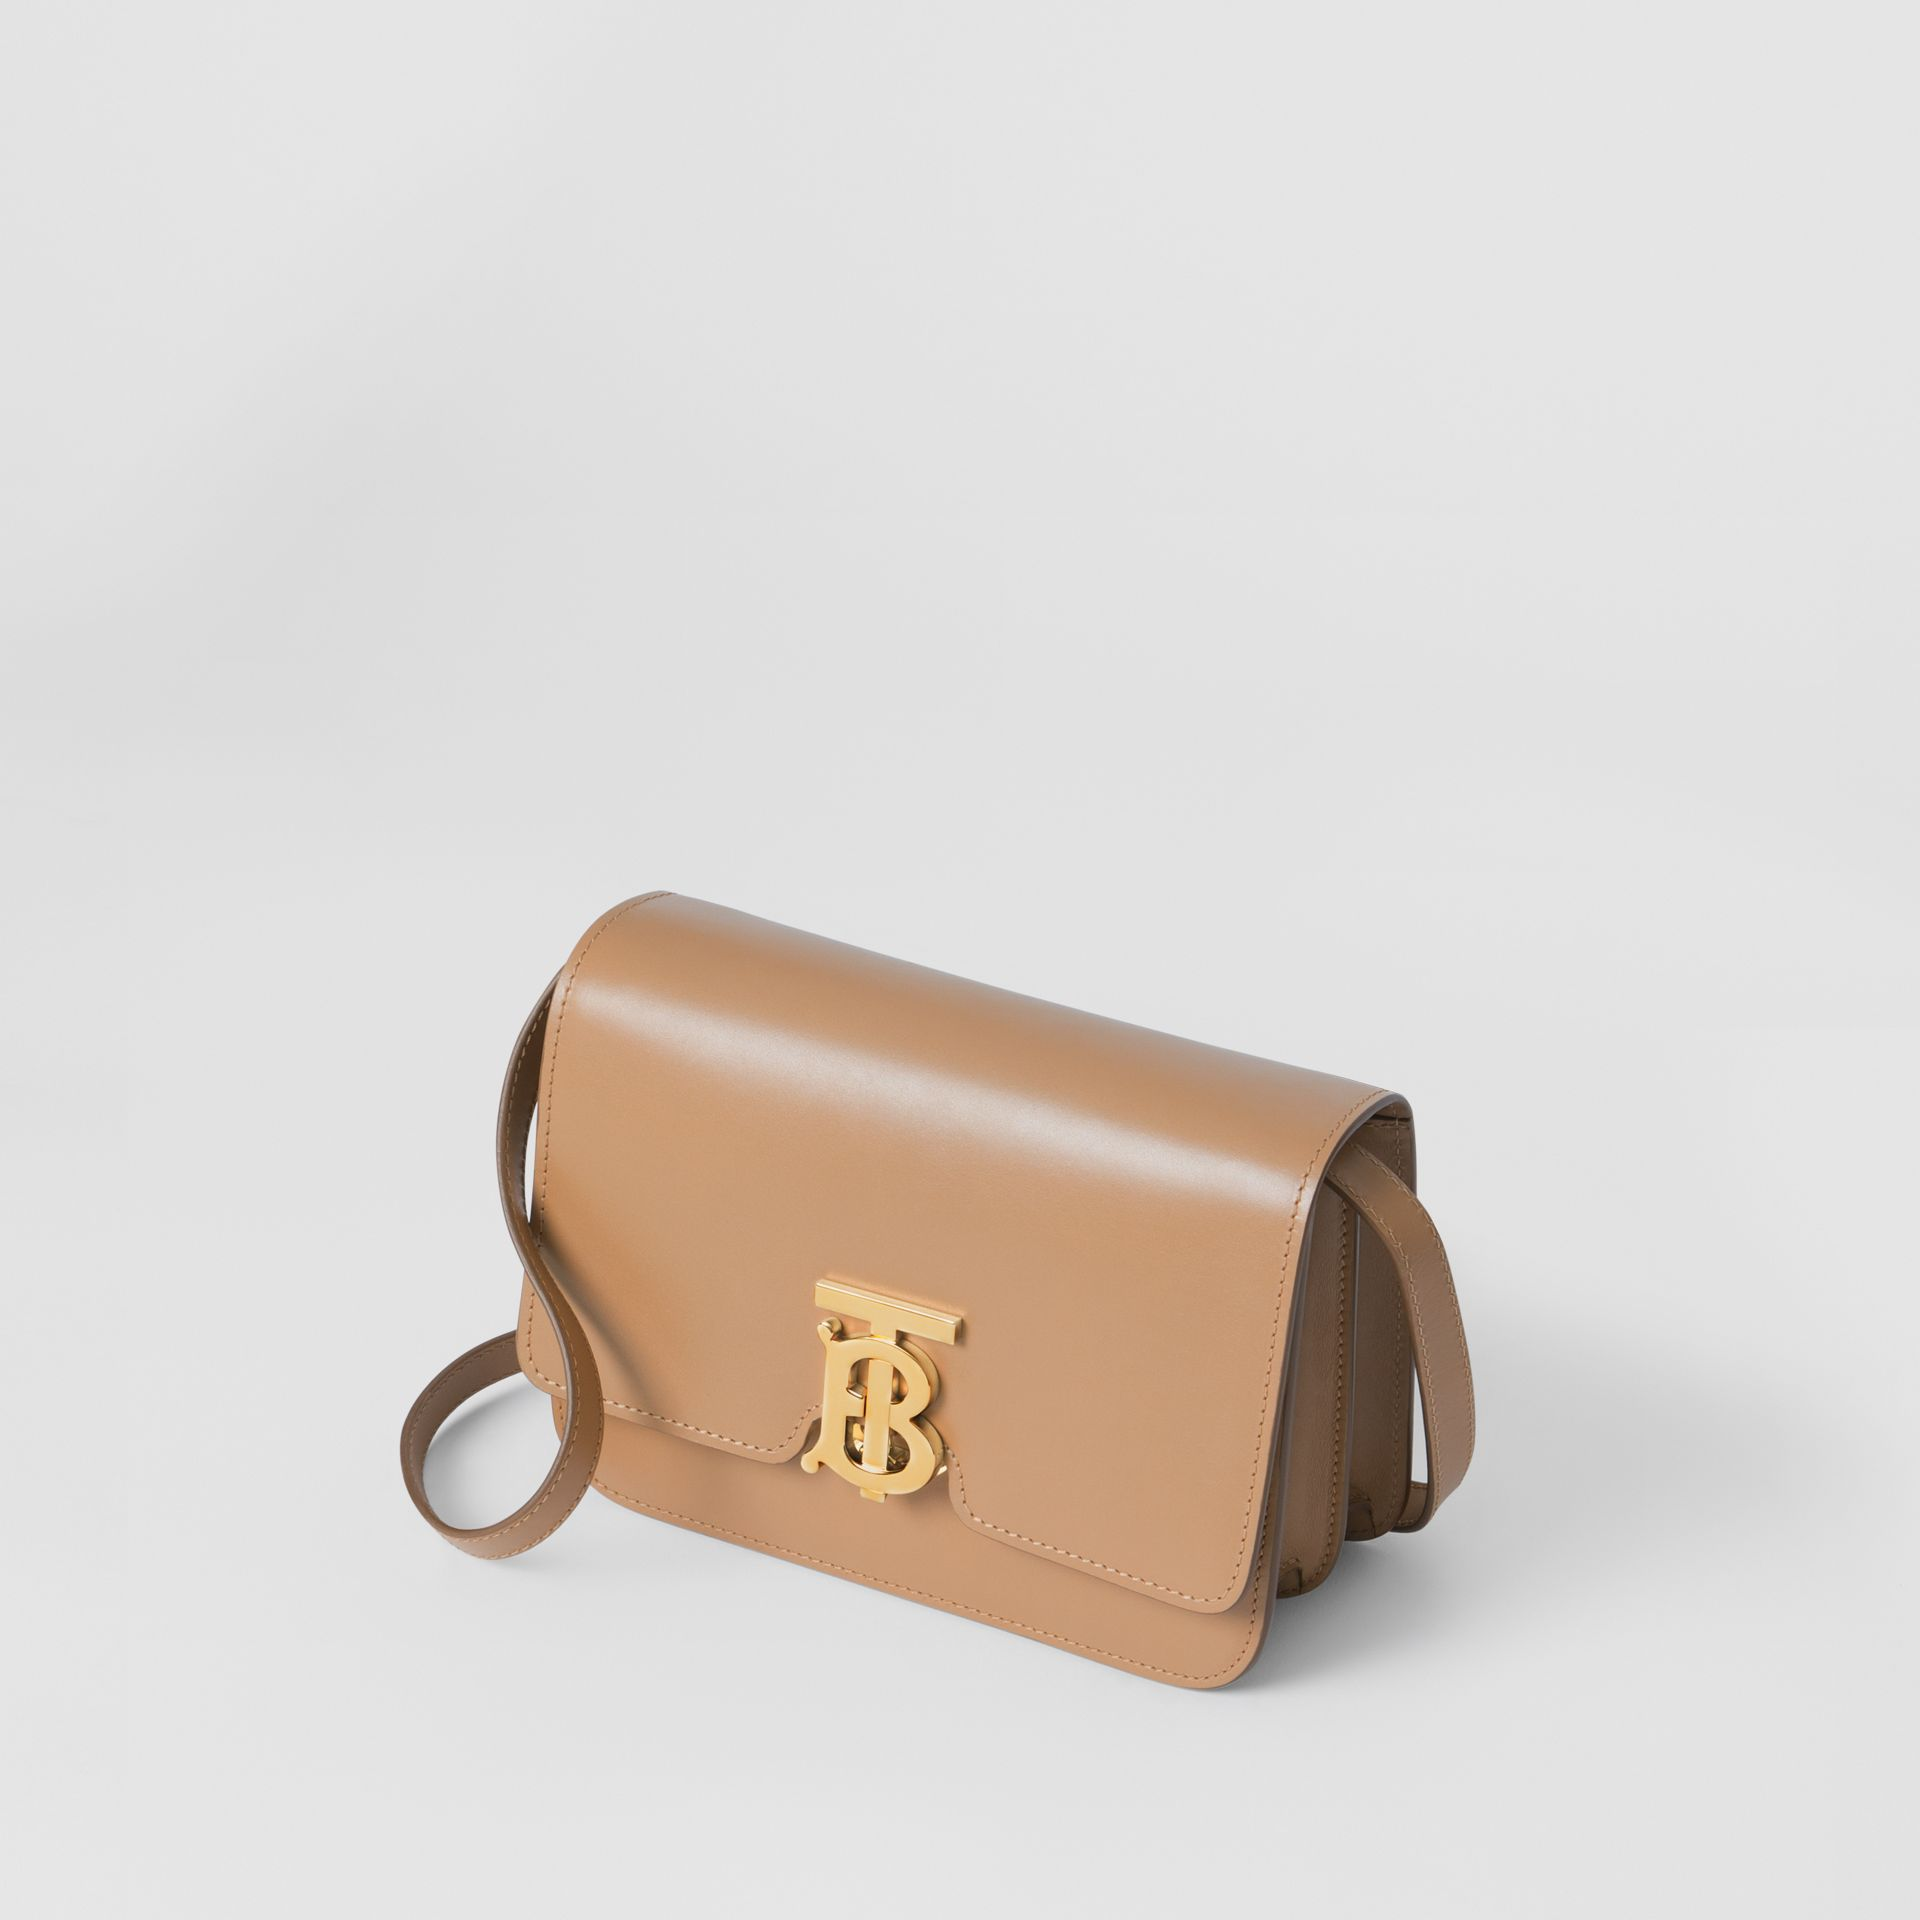 Small Leather TB Bag in Light Camel - Women | Burberry Hong Kong S.A.R - gallery image 3